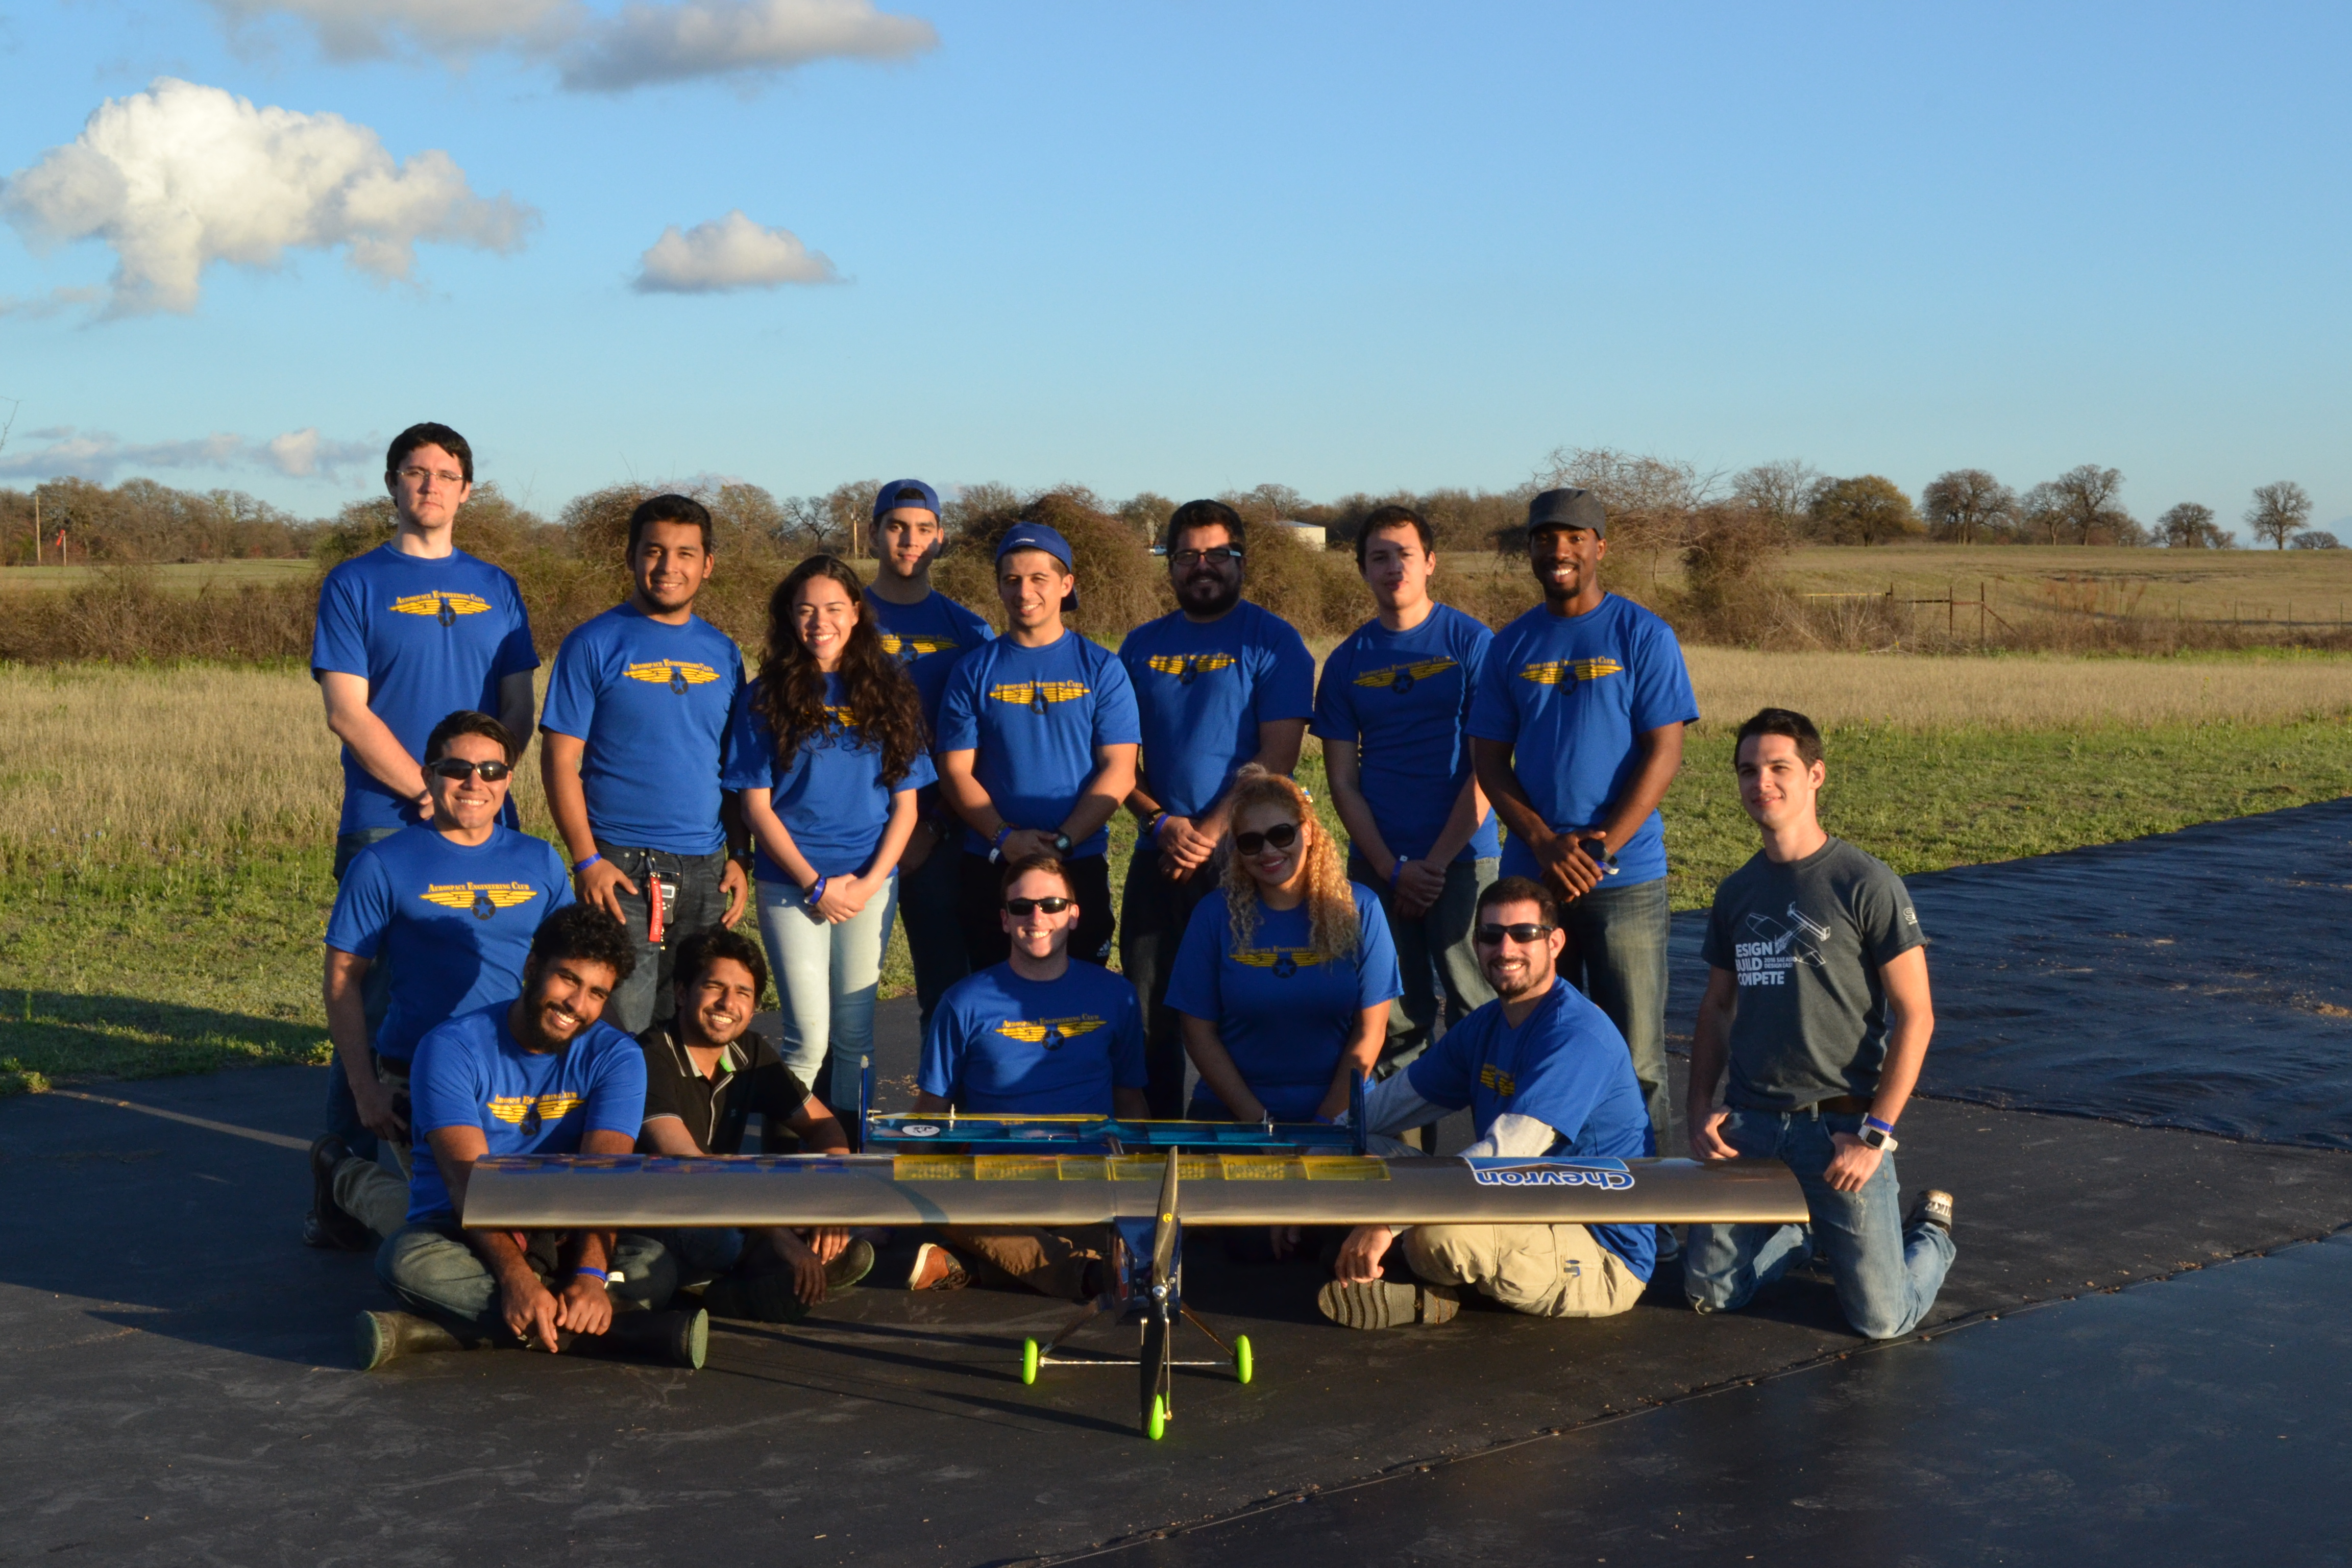 Students take third place at international aerospace competition